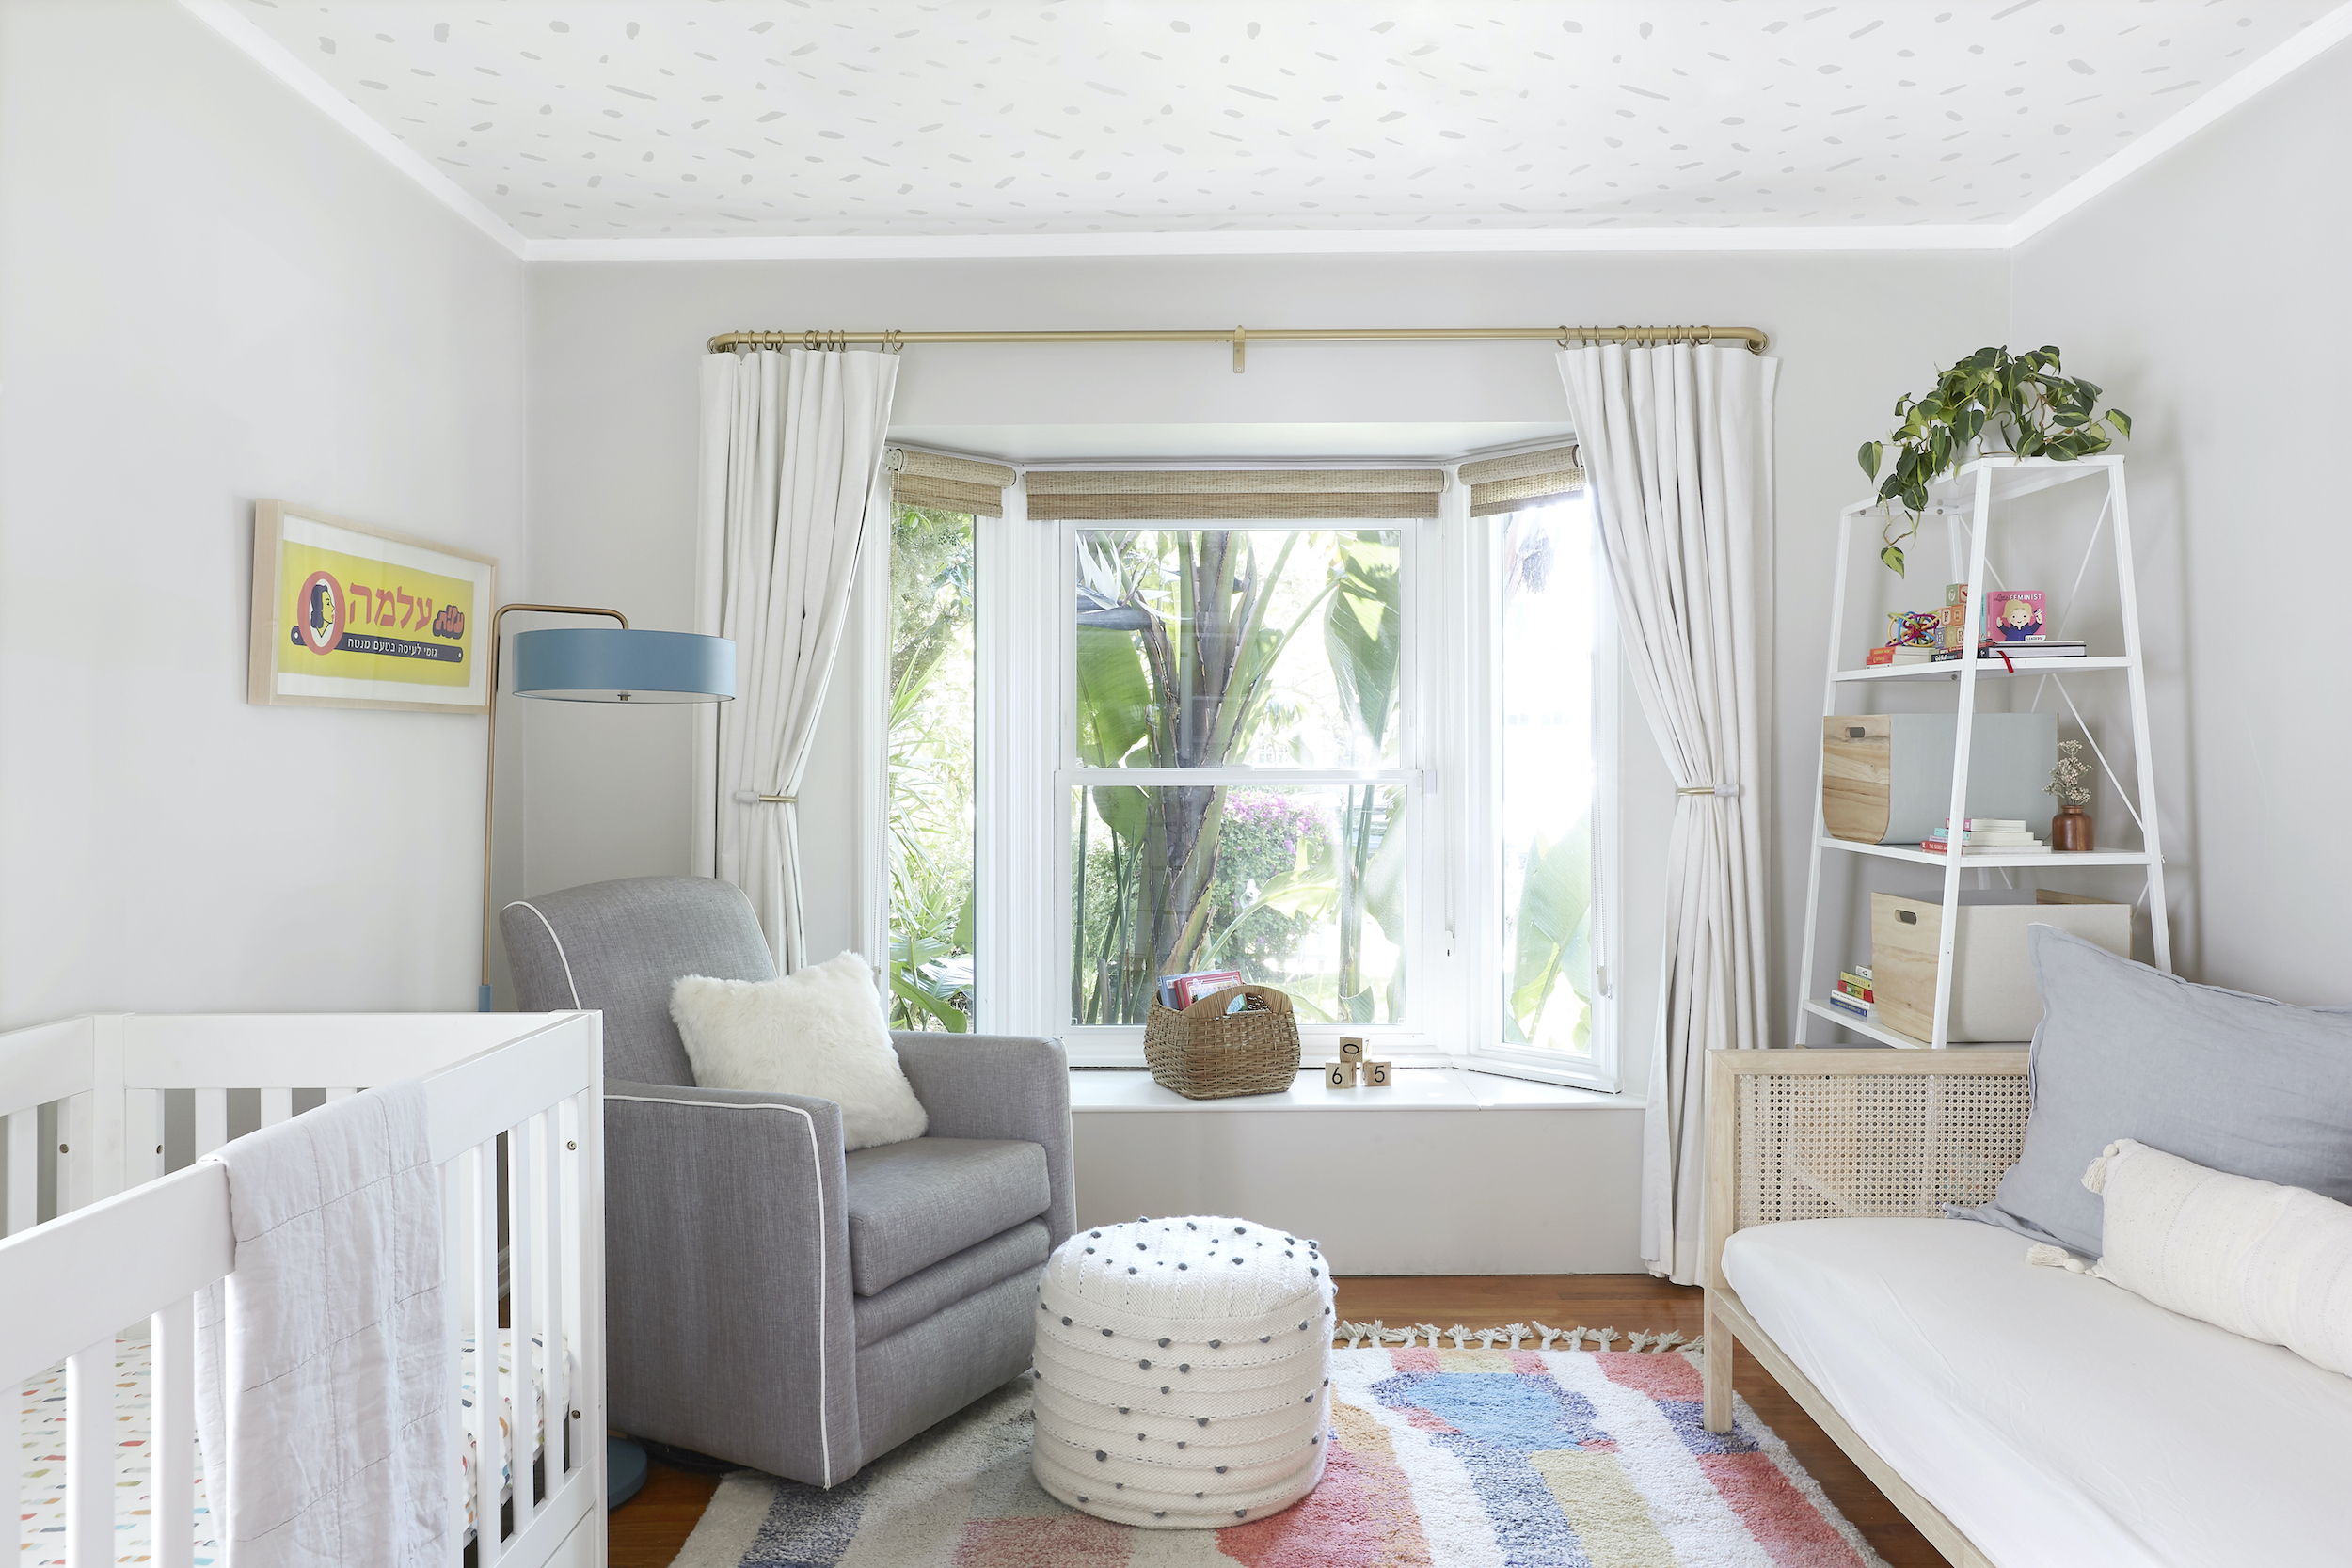 White drapes and woven shades in bay window make it easy to adjust natural lighting in nursery